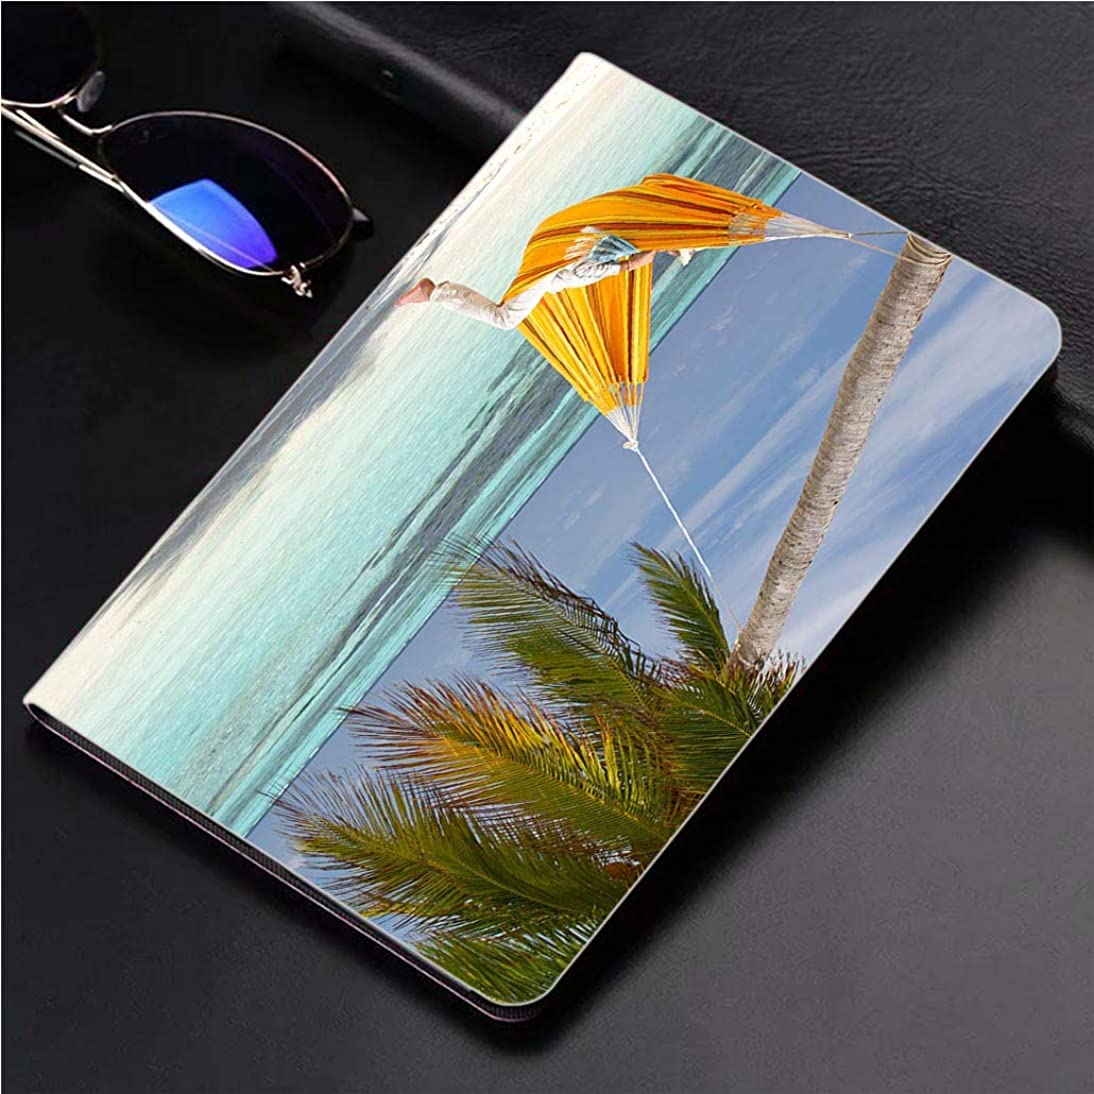 Compatible with 3D Printed iPad Pro 10.5 Case Orange Hammock Hanging on a Paradise Beach 360 Degree Swivel Mount Cover for Automatic Sleep Wake up ipad case upar967289985419